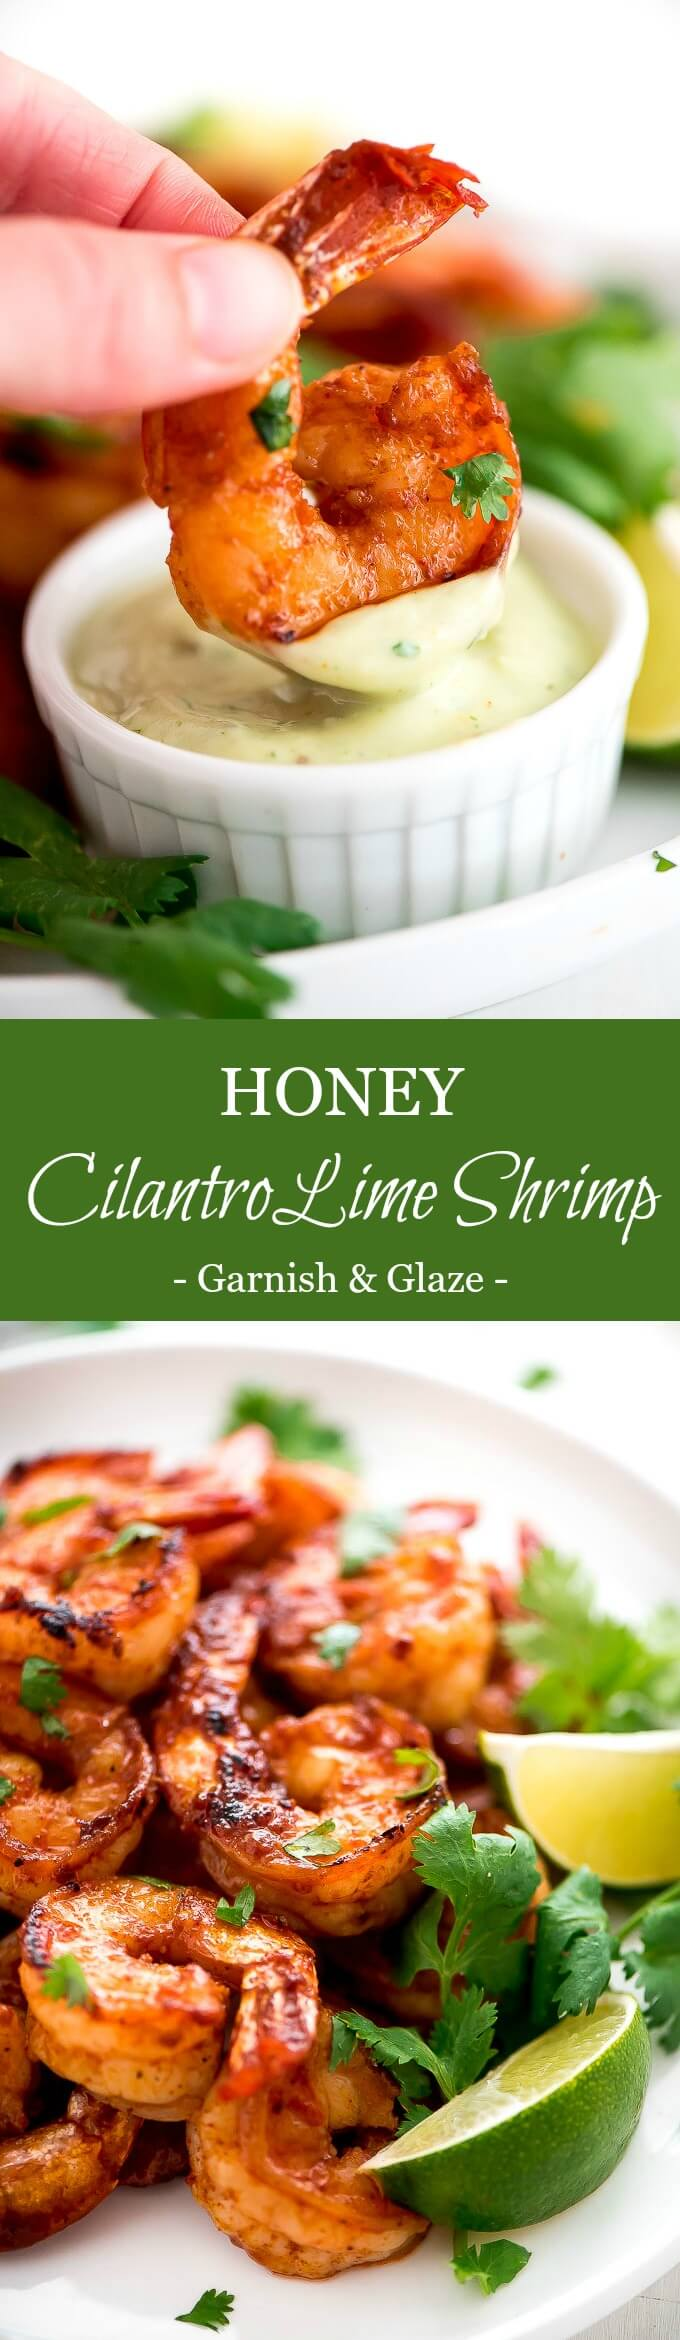 There's no better way to enjoy shrimp than with a bit of heat and sweet in this Honey Cilantro Lime Shrimp with a cool and refreshing Avocado Dip.